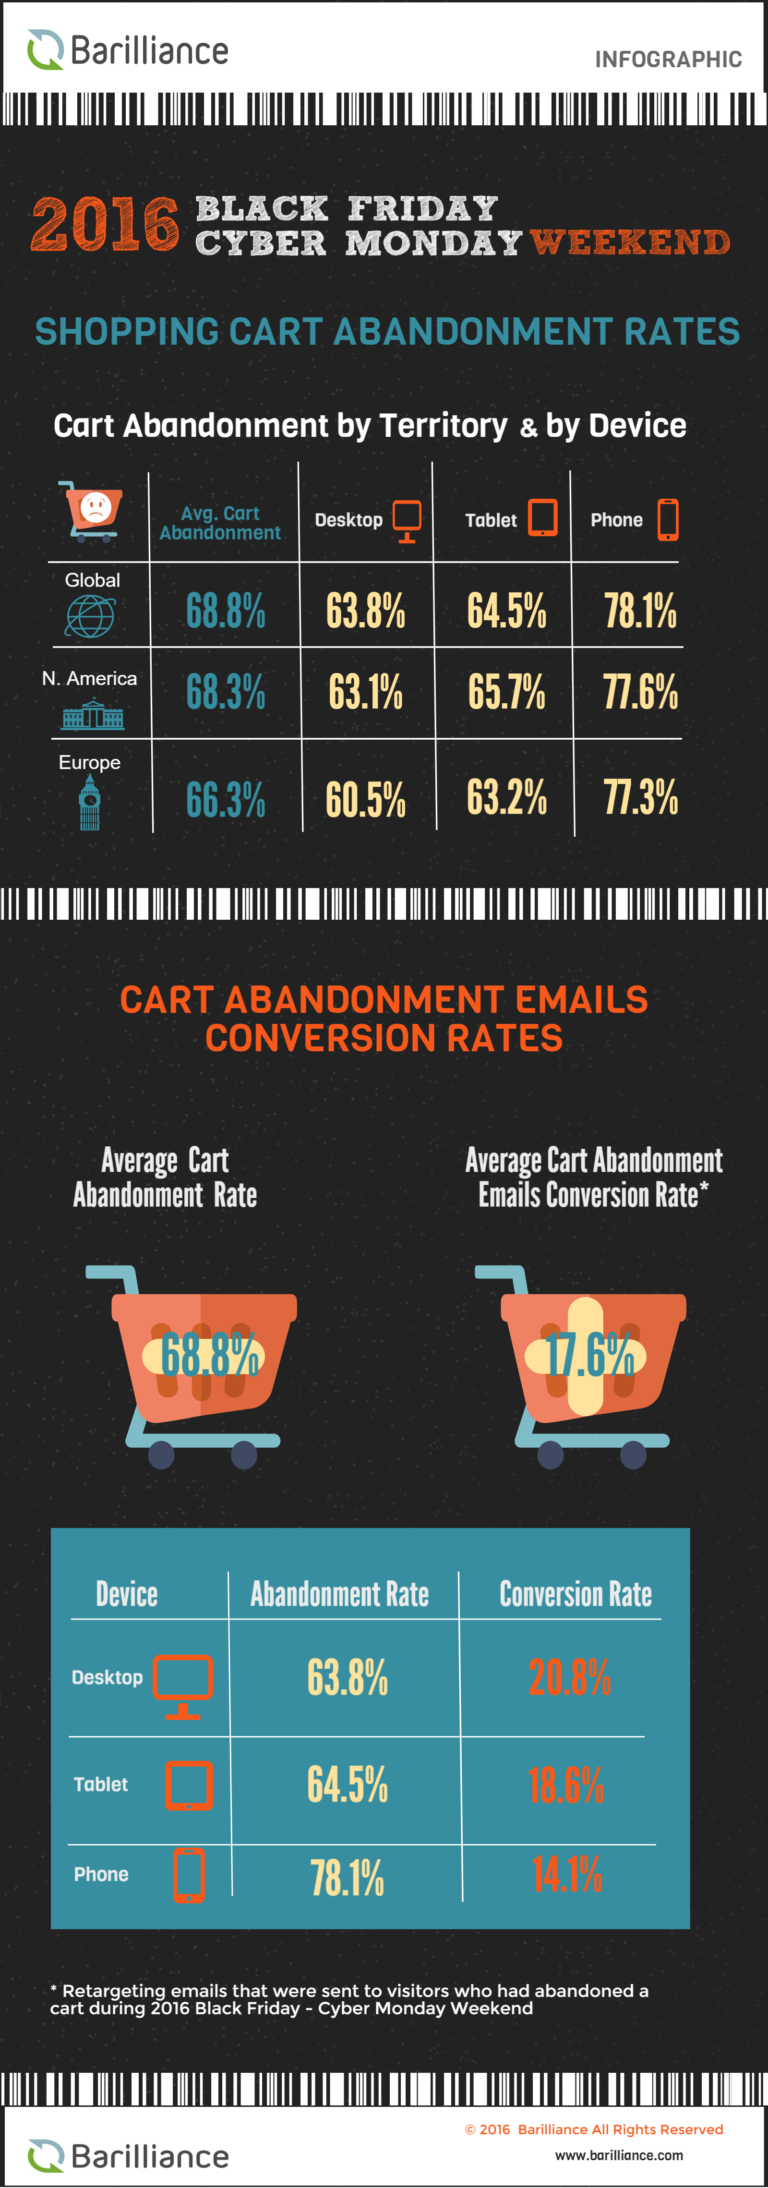 Shopping cart abandonment rates on 2016 black friday cyber monday weekend 768x2188 - A look at different ways & solutions available for cart abandonment